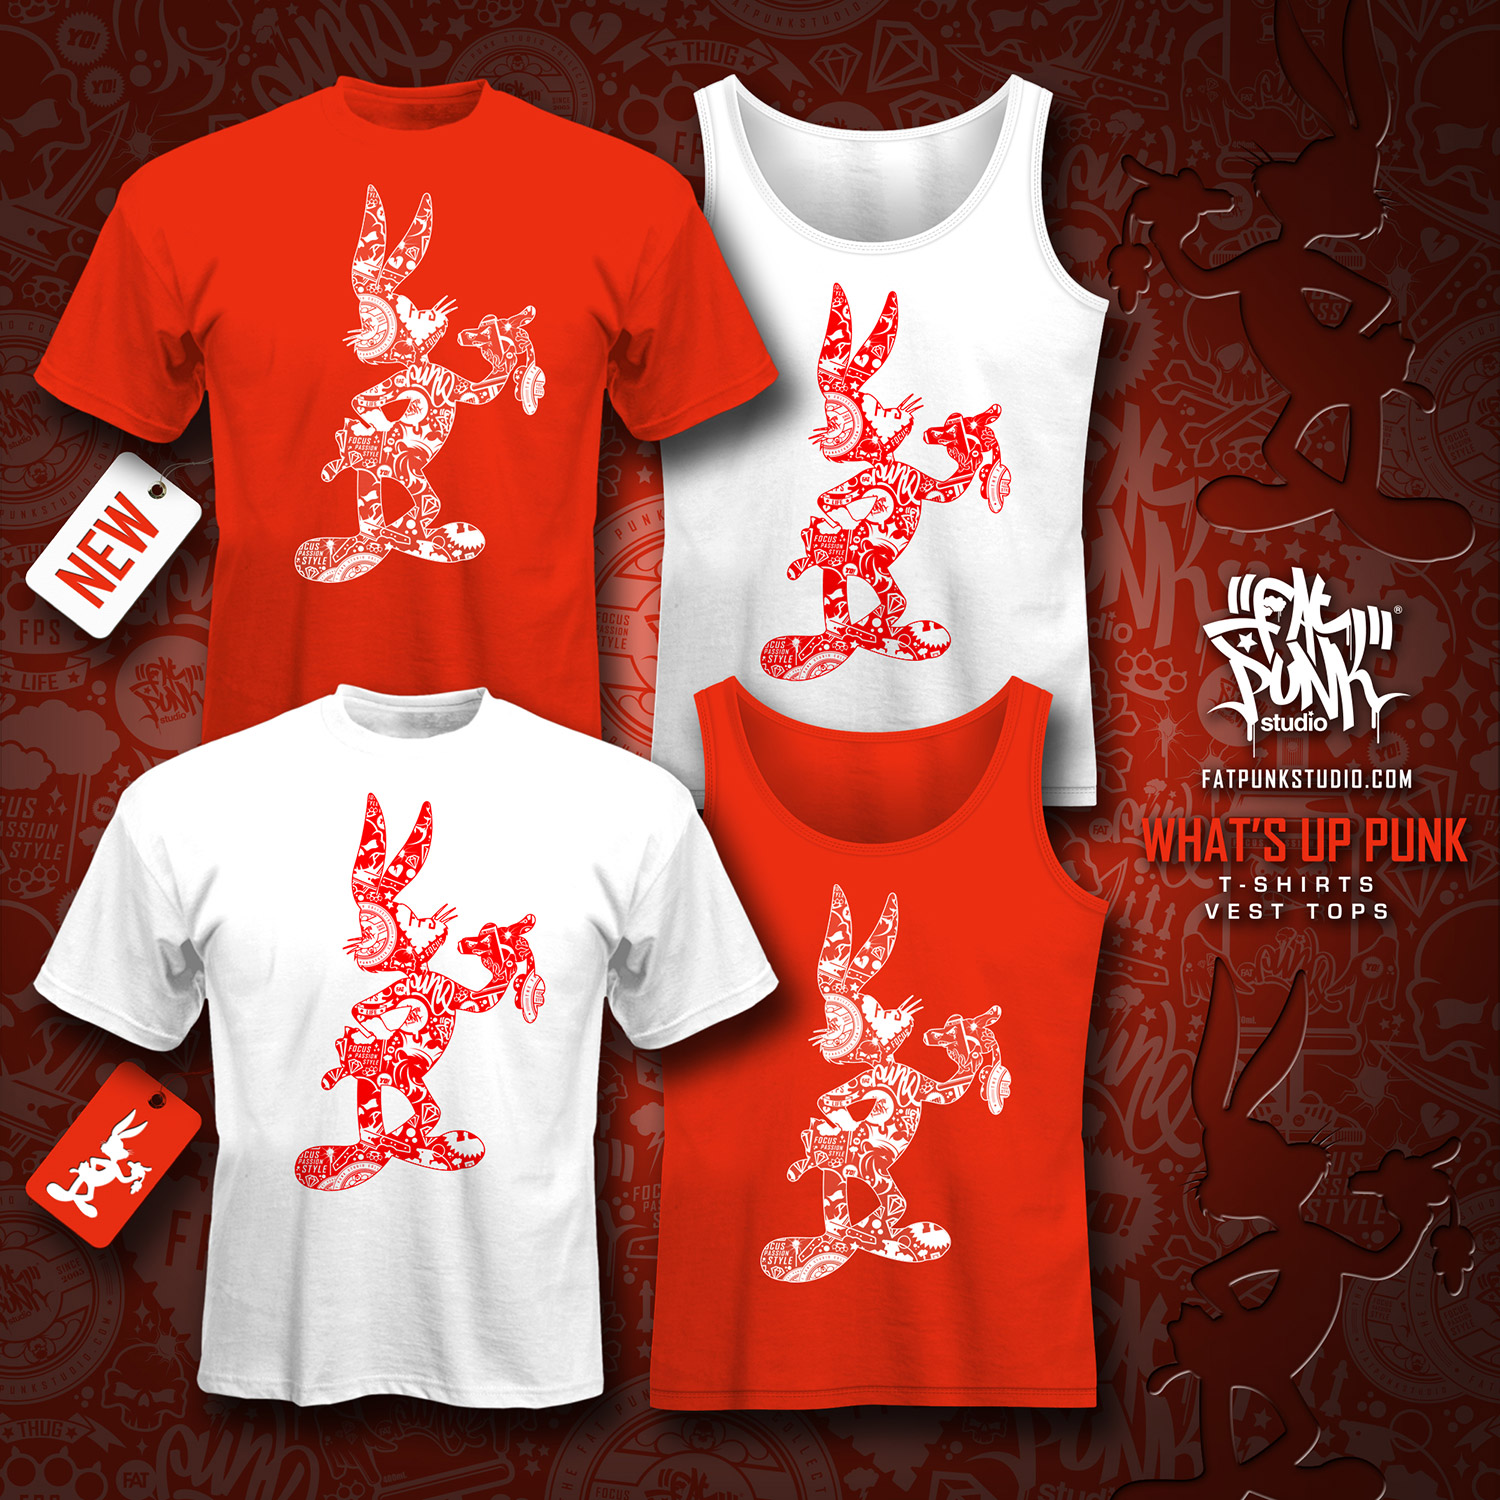 whats-up-punk-bugs-bunny-clothing-02